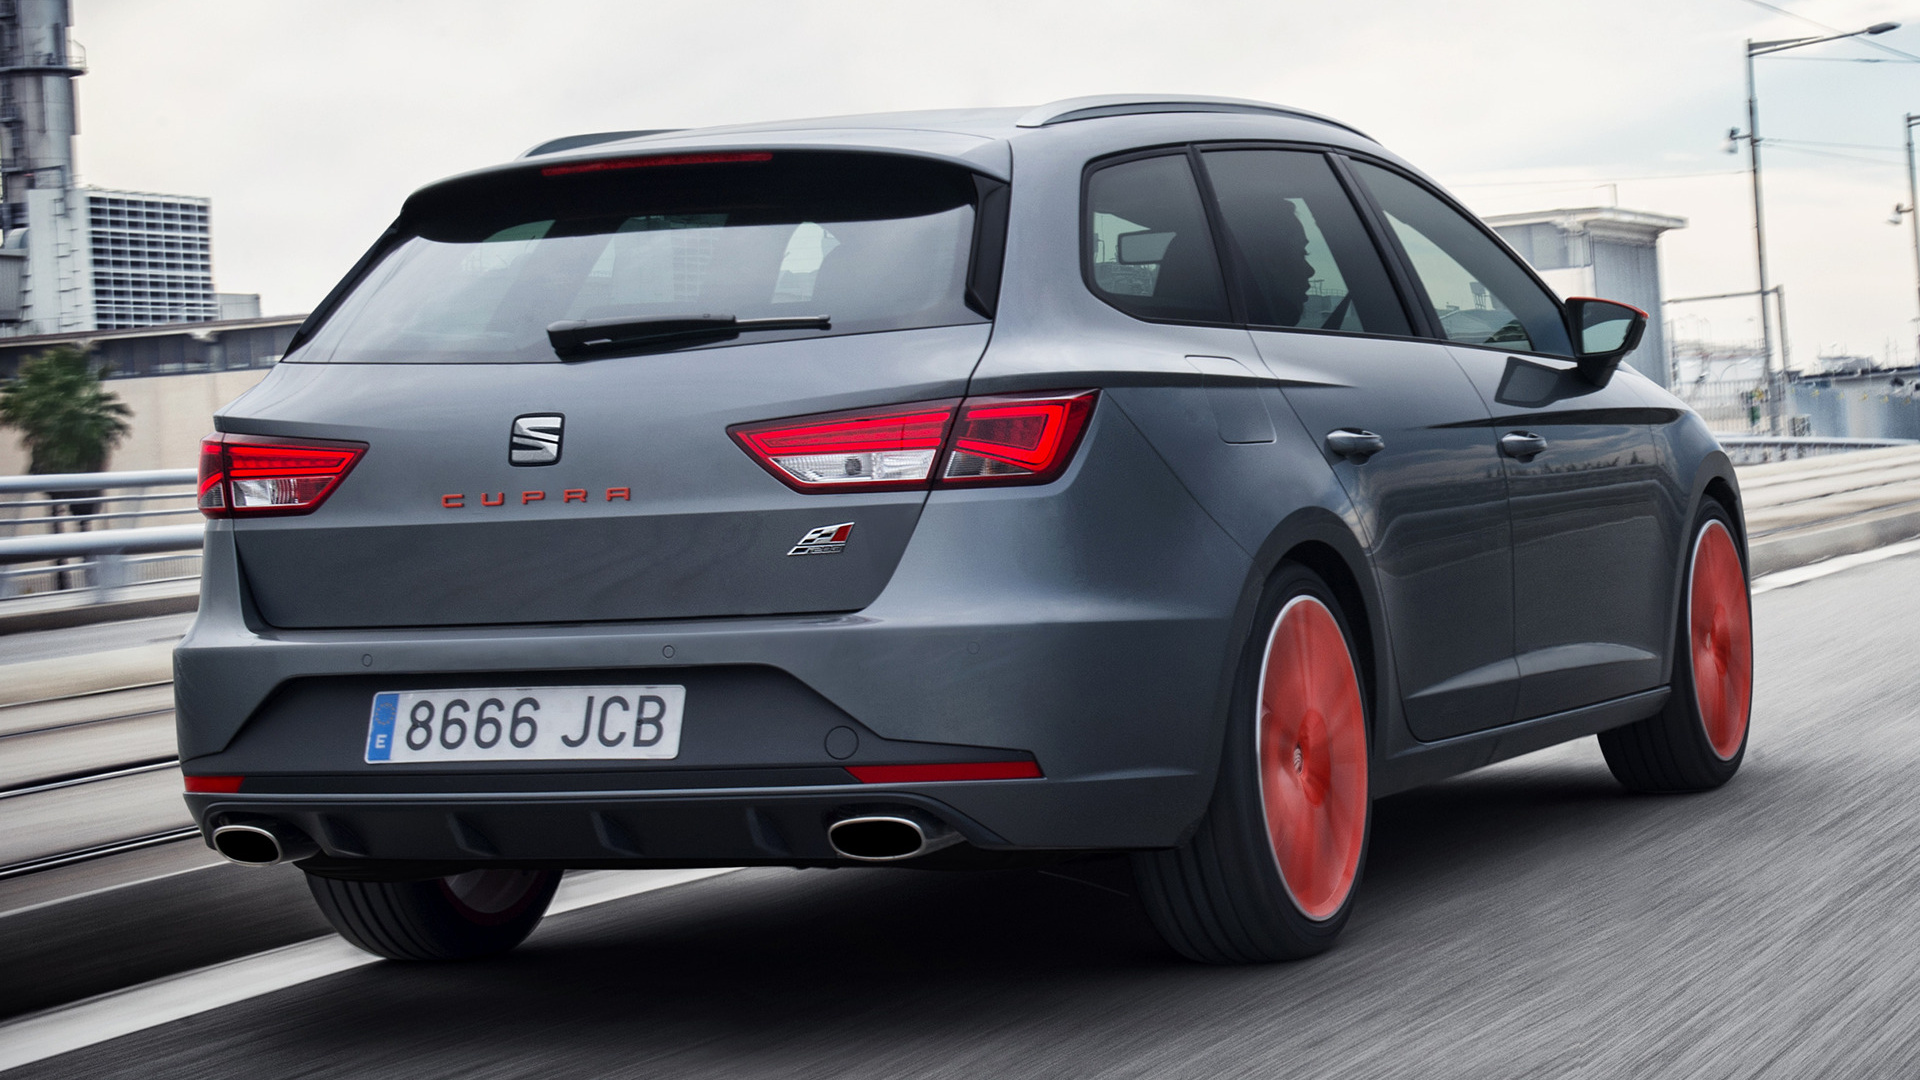 seat leon st cupra 280 2015 wallpapers and hd images. Black Bedroom Furniture Sets. Home Design Ideas